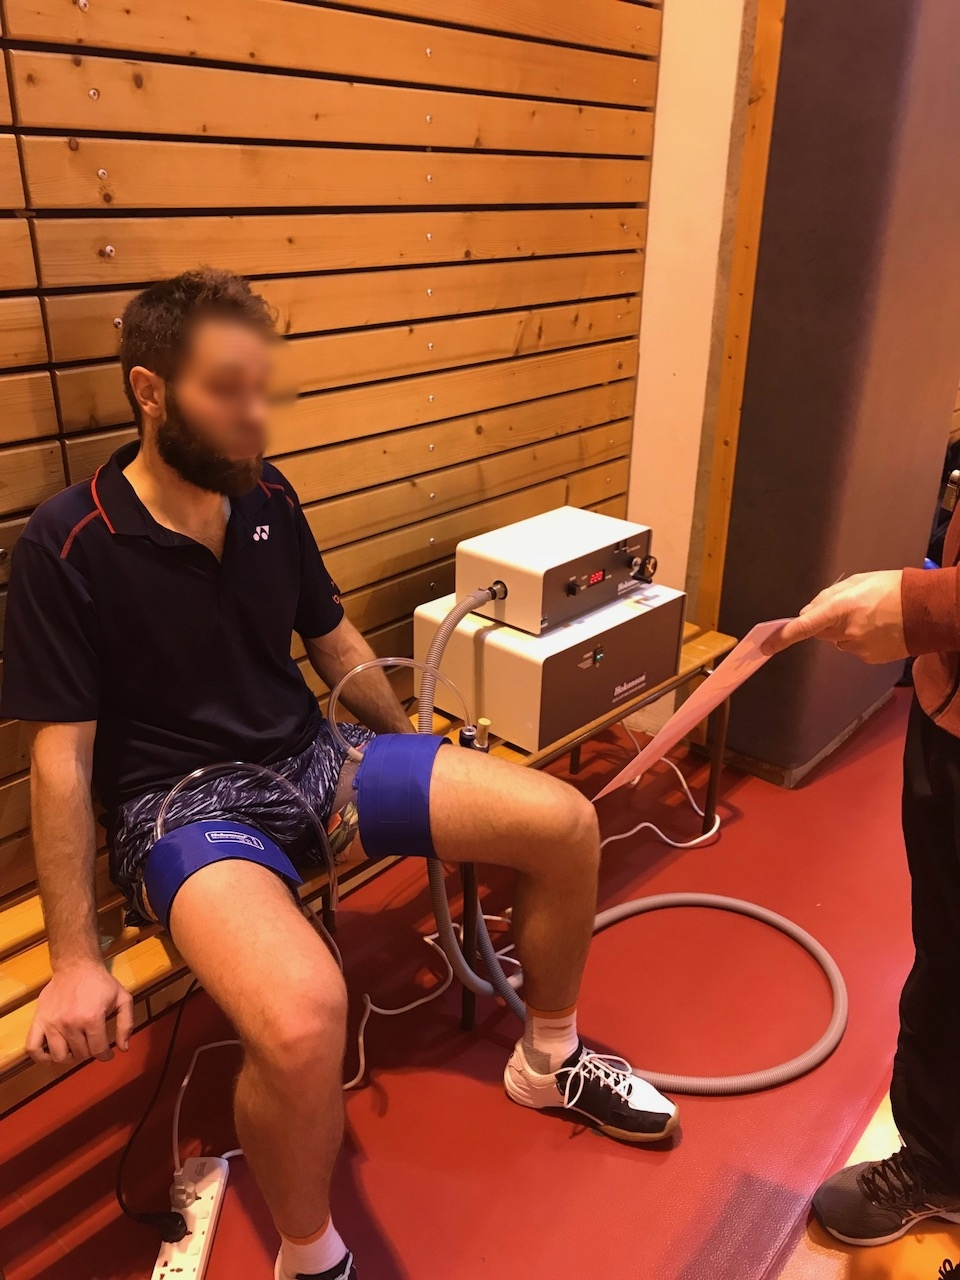 Blow flow restriction during recovery to prevent muscle damage -